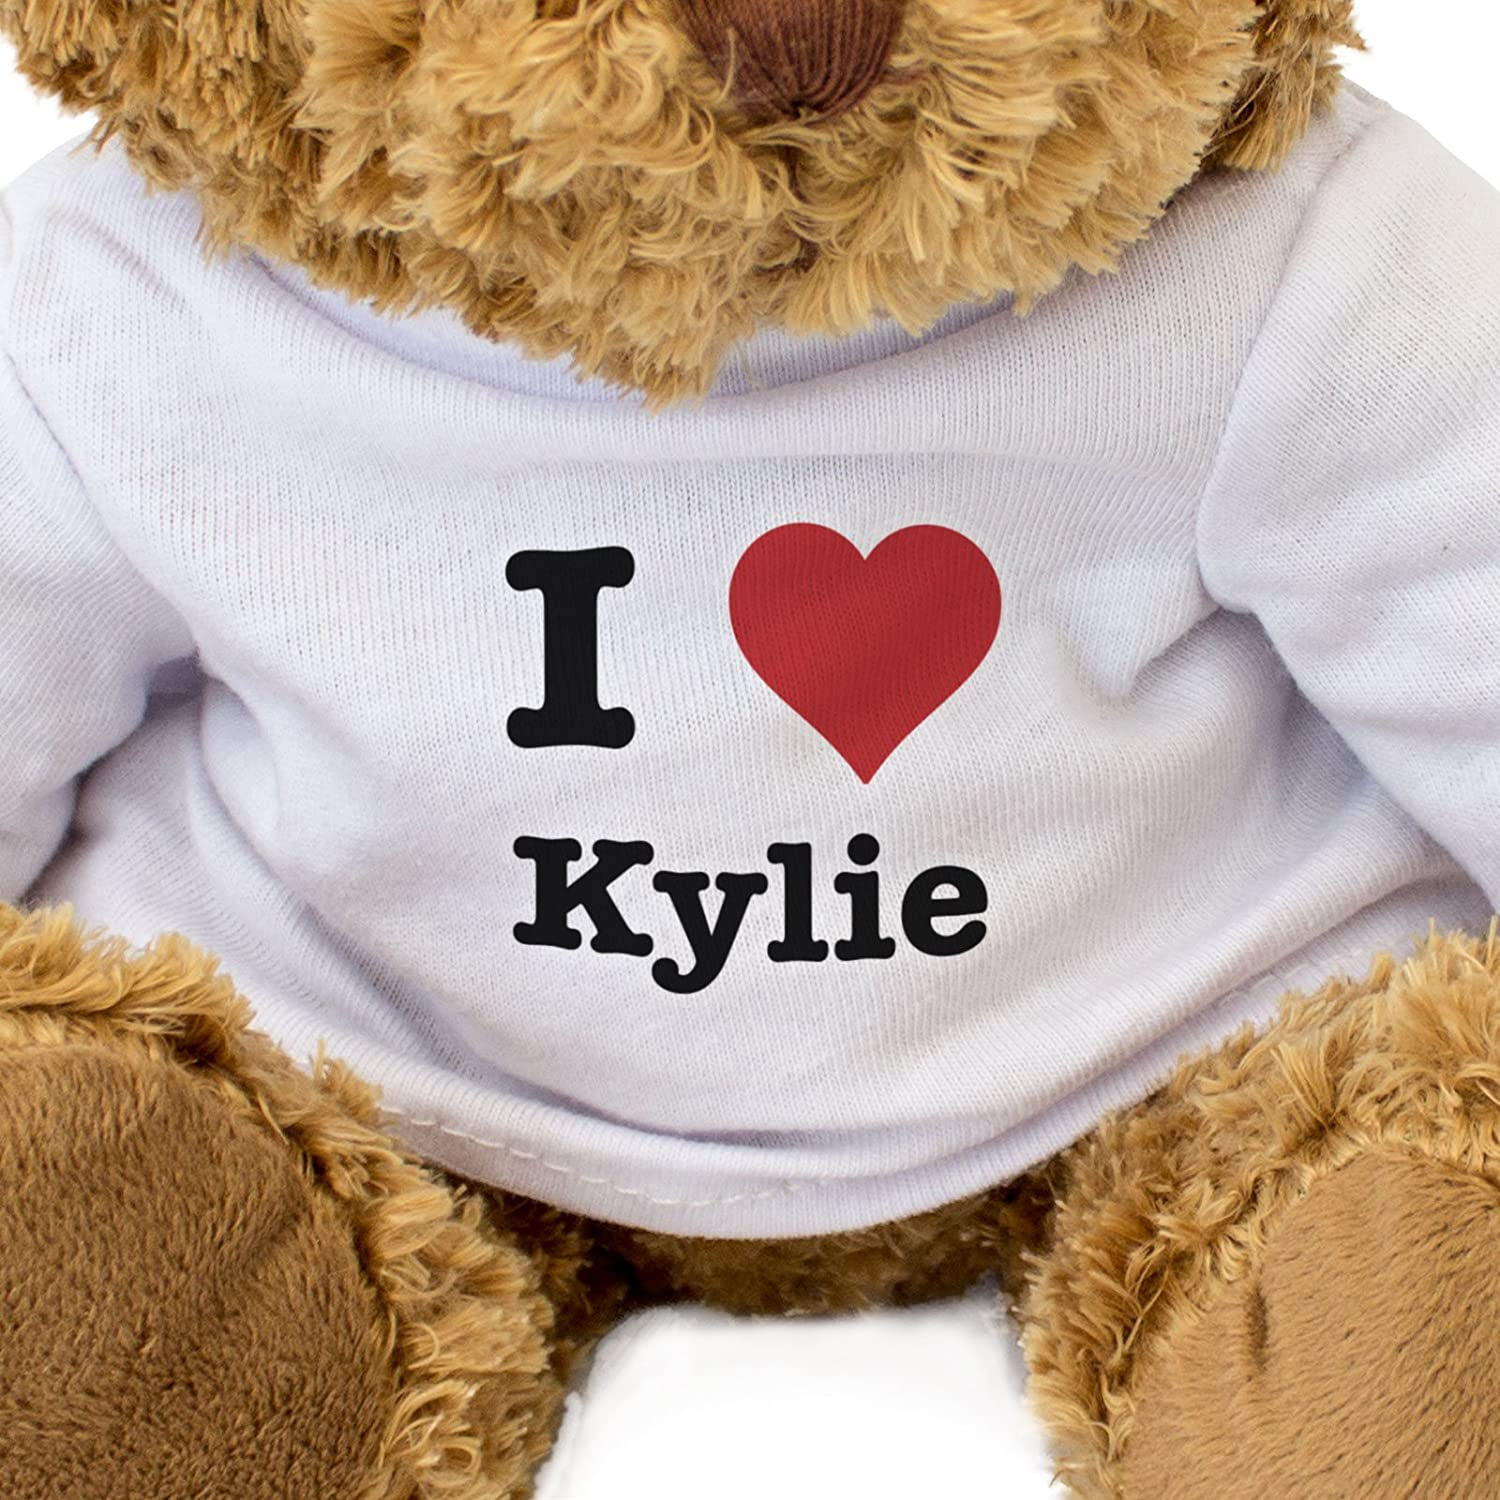 NEW Teddy Bear Cute And Cuddly I LOVE KYLIE Gift Present Birthday Xmas Valentine London Teddy Bears